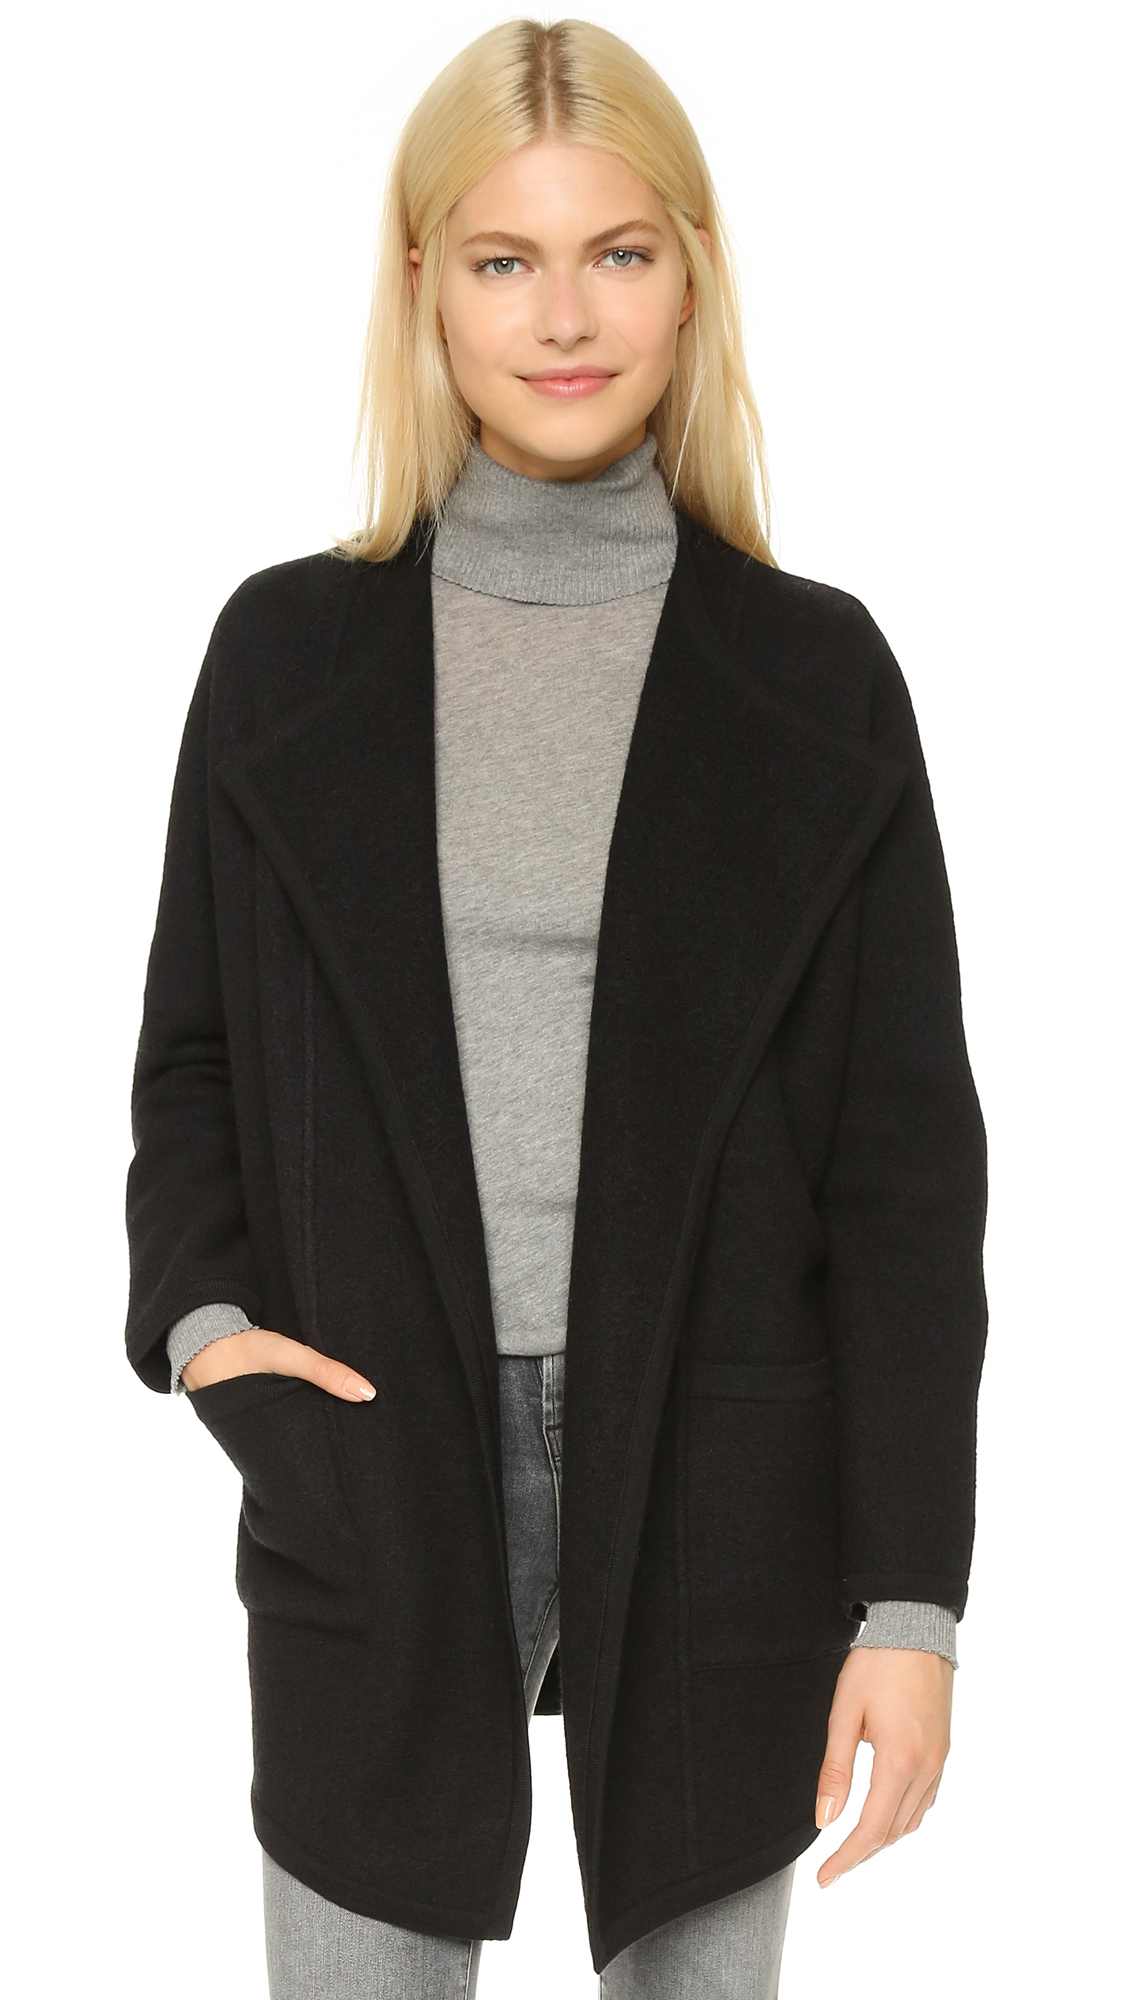 Madewell Sweater Coat - Heather Grey in Black | Lyst